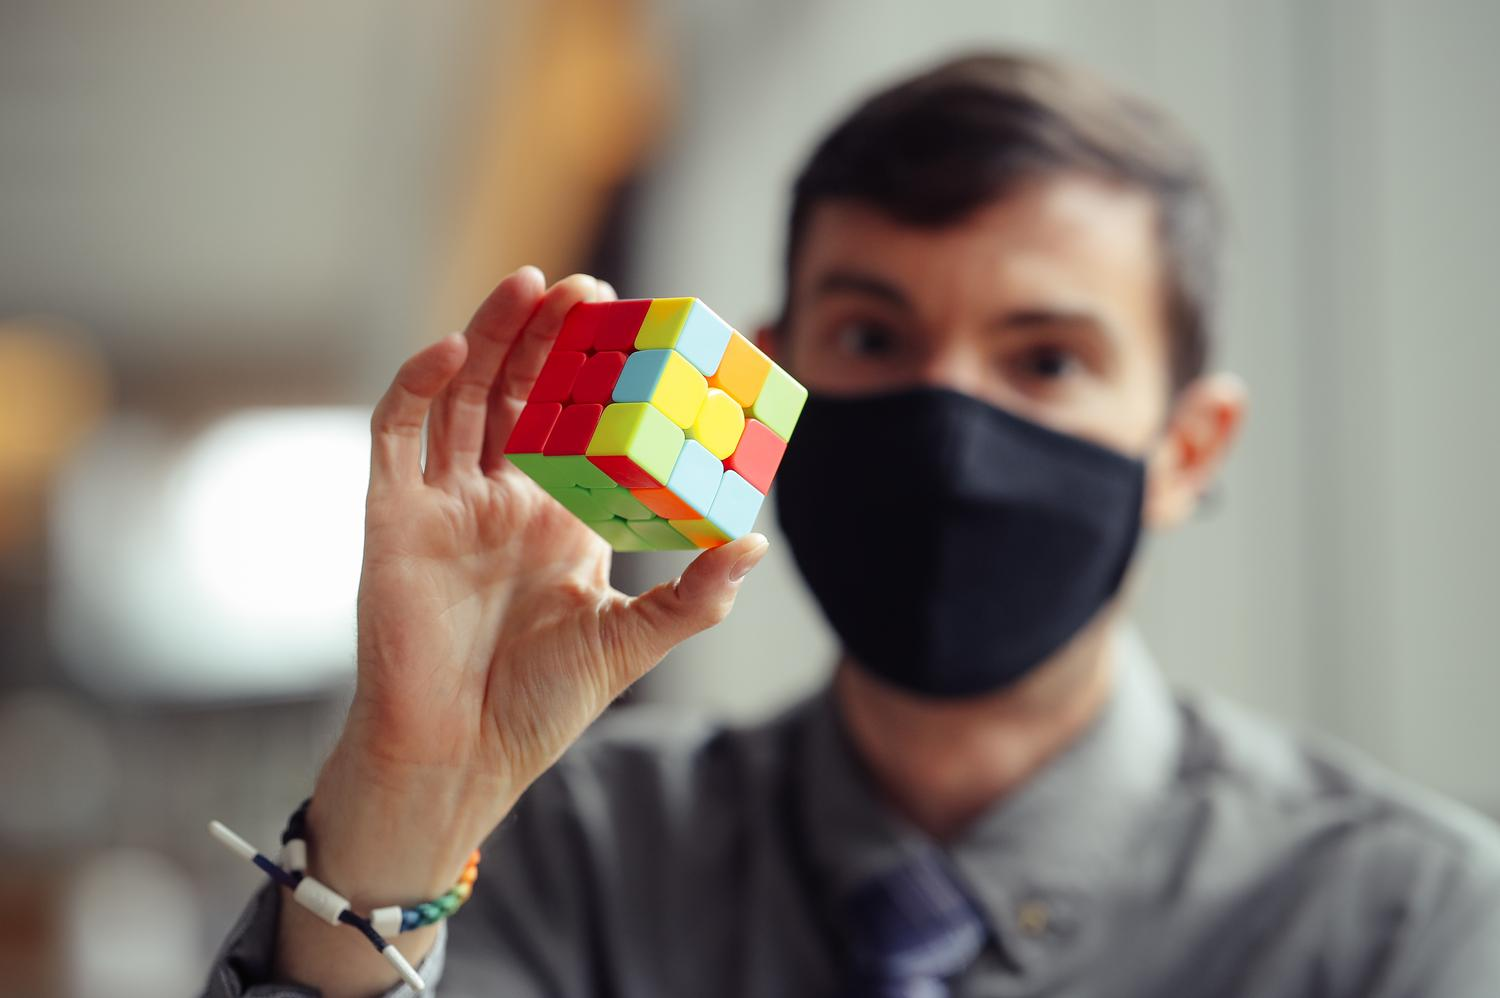 man in mask holds Rubik's cube puzzle